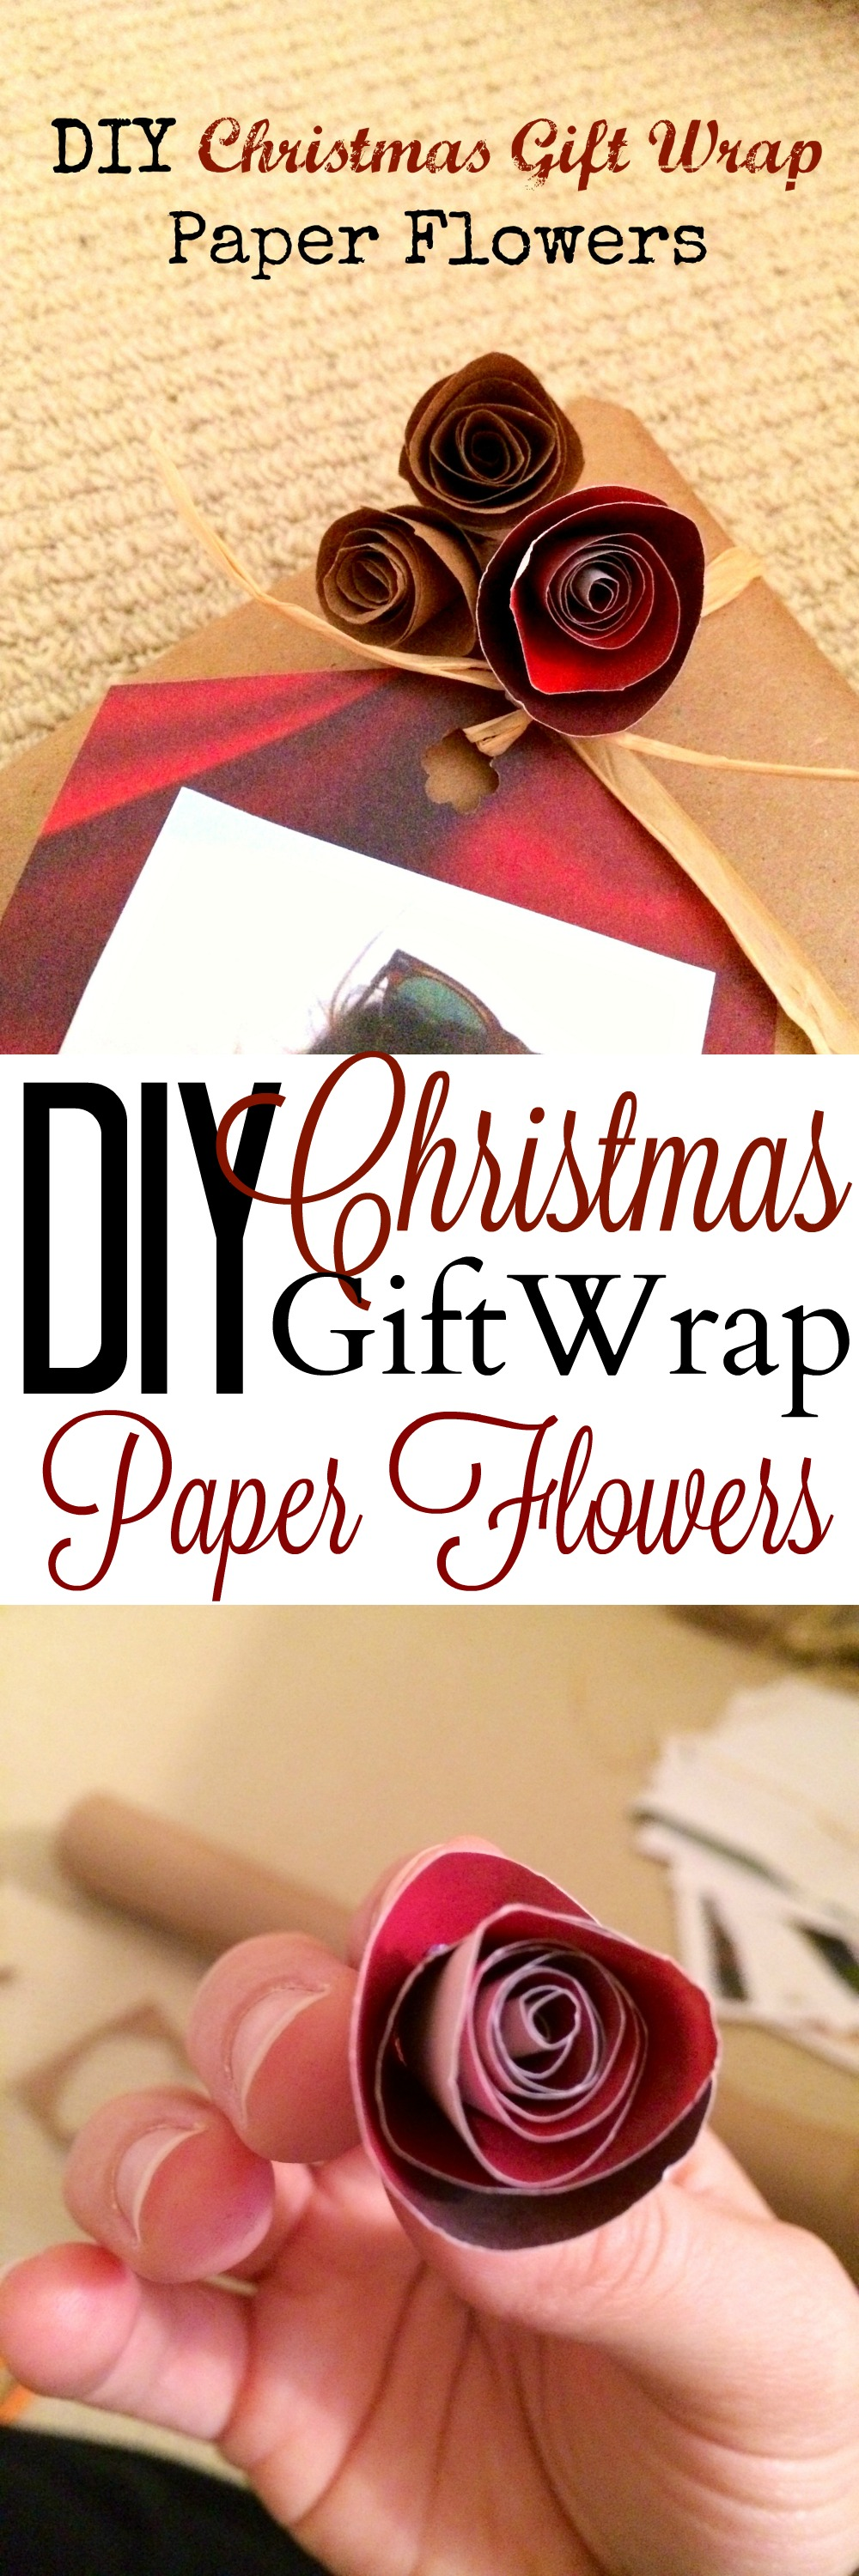 These DIY paper flowers are made out of wrapping paper and are so cute and easy! It's a great way to spruce up your wrapping without spending more!